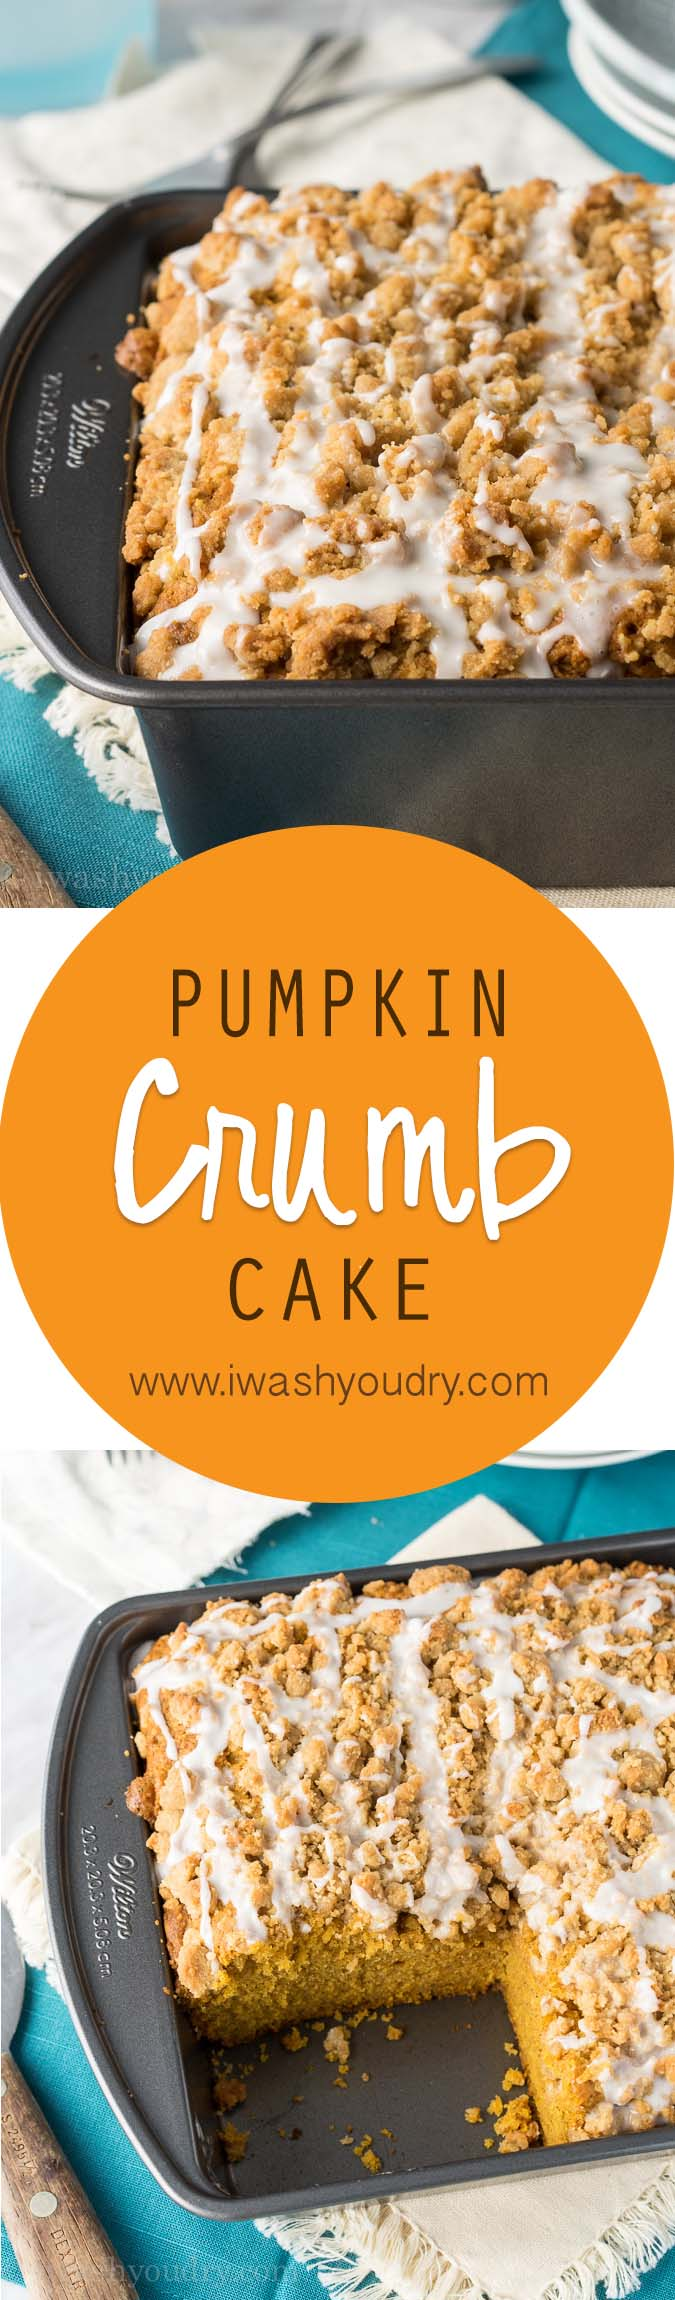 The smoothest, most delicious pumpkin crumb pie with a sweet icing drizzled over lots of yummy crumbs! What a great cake for this fall!